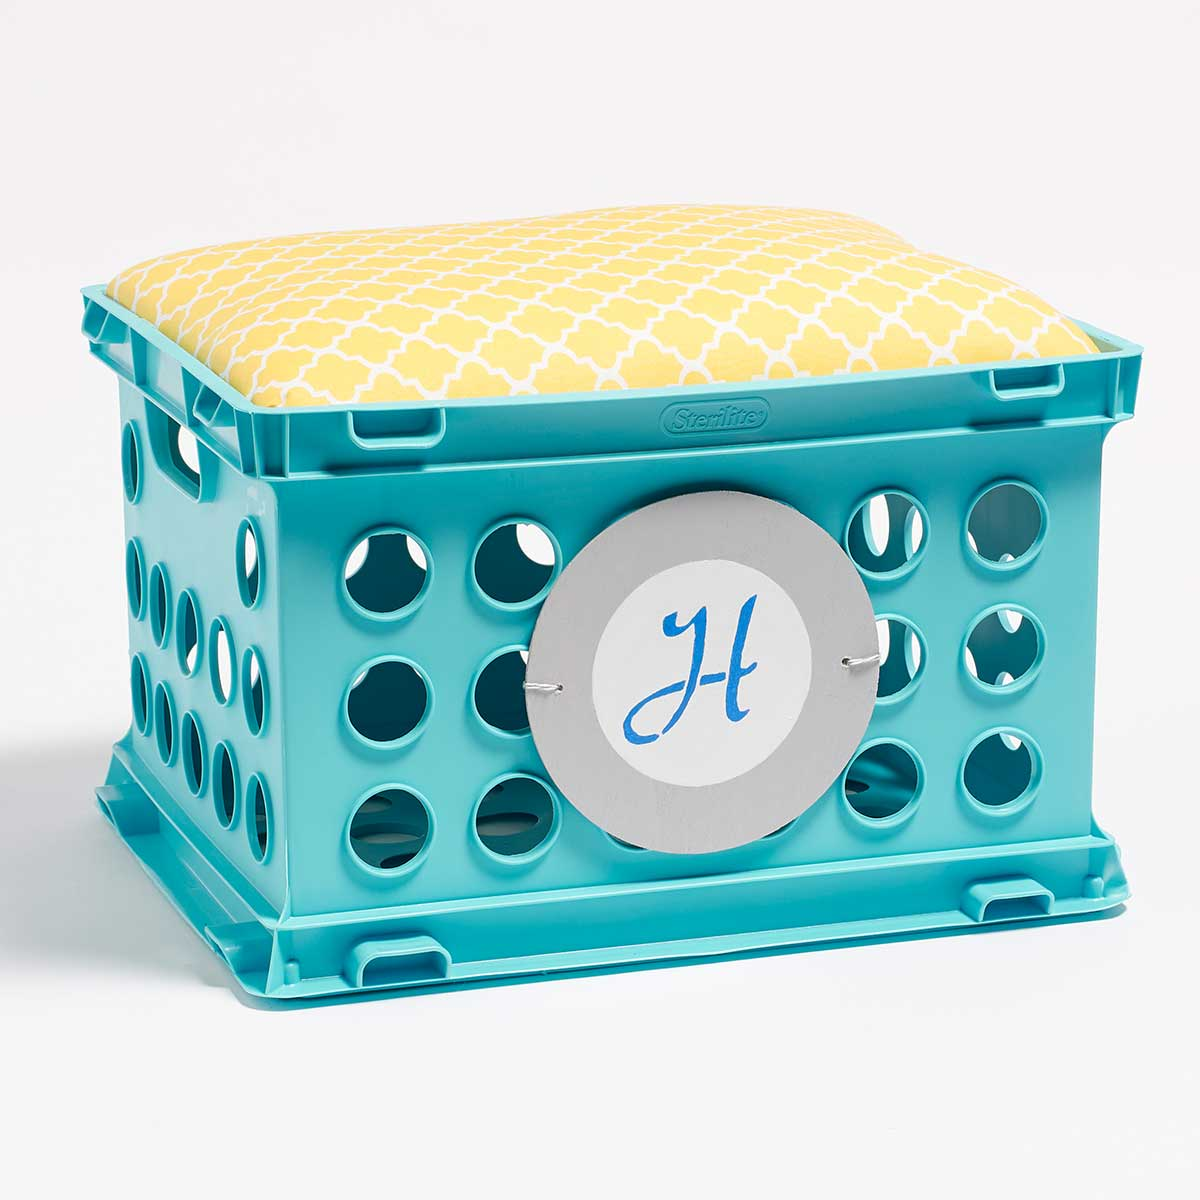 Dorm Storage Idea - Personalized Crate Seating